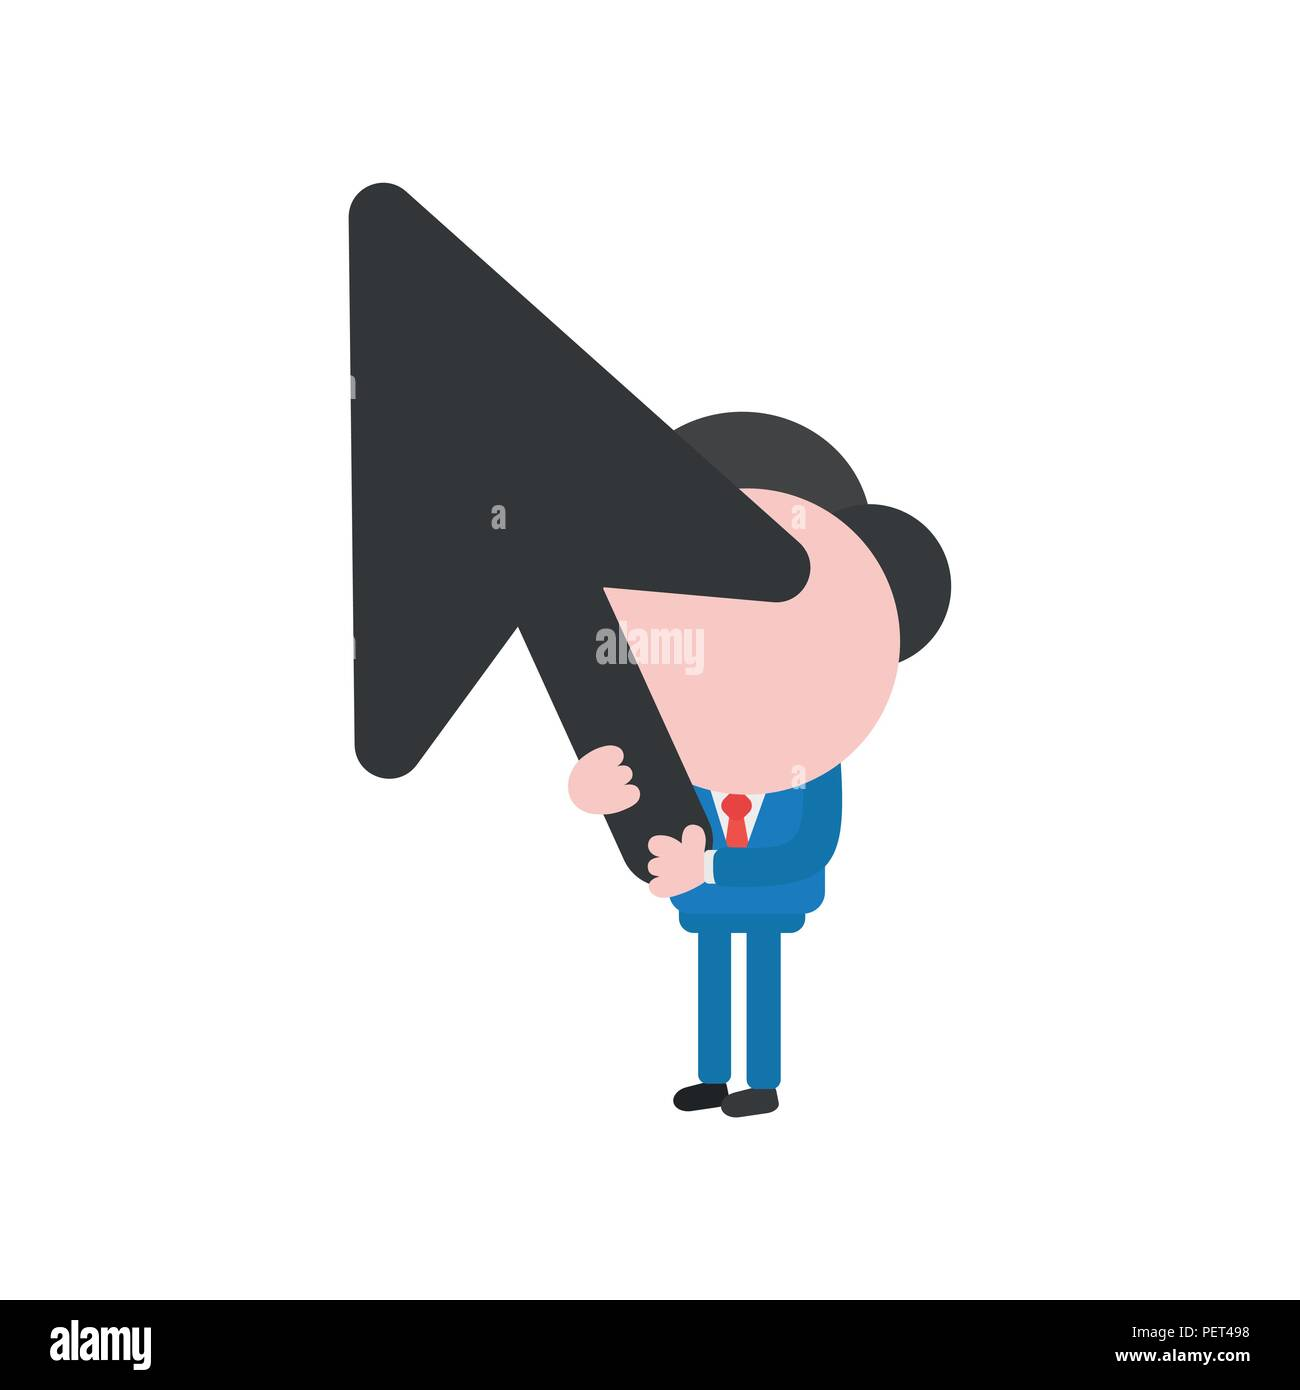 Vector illustration of faceless businessman character holding